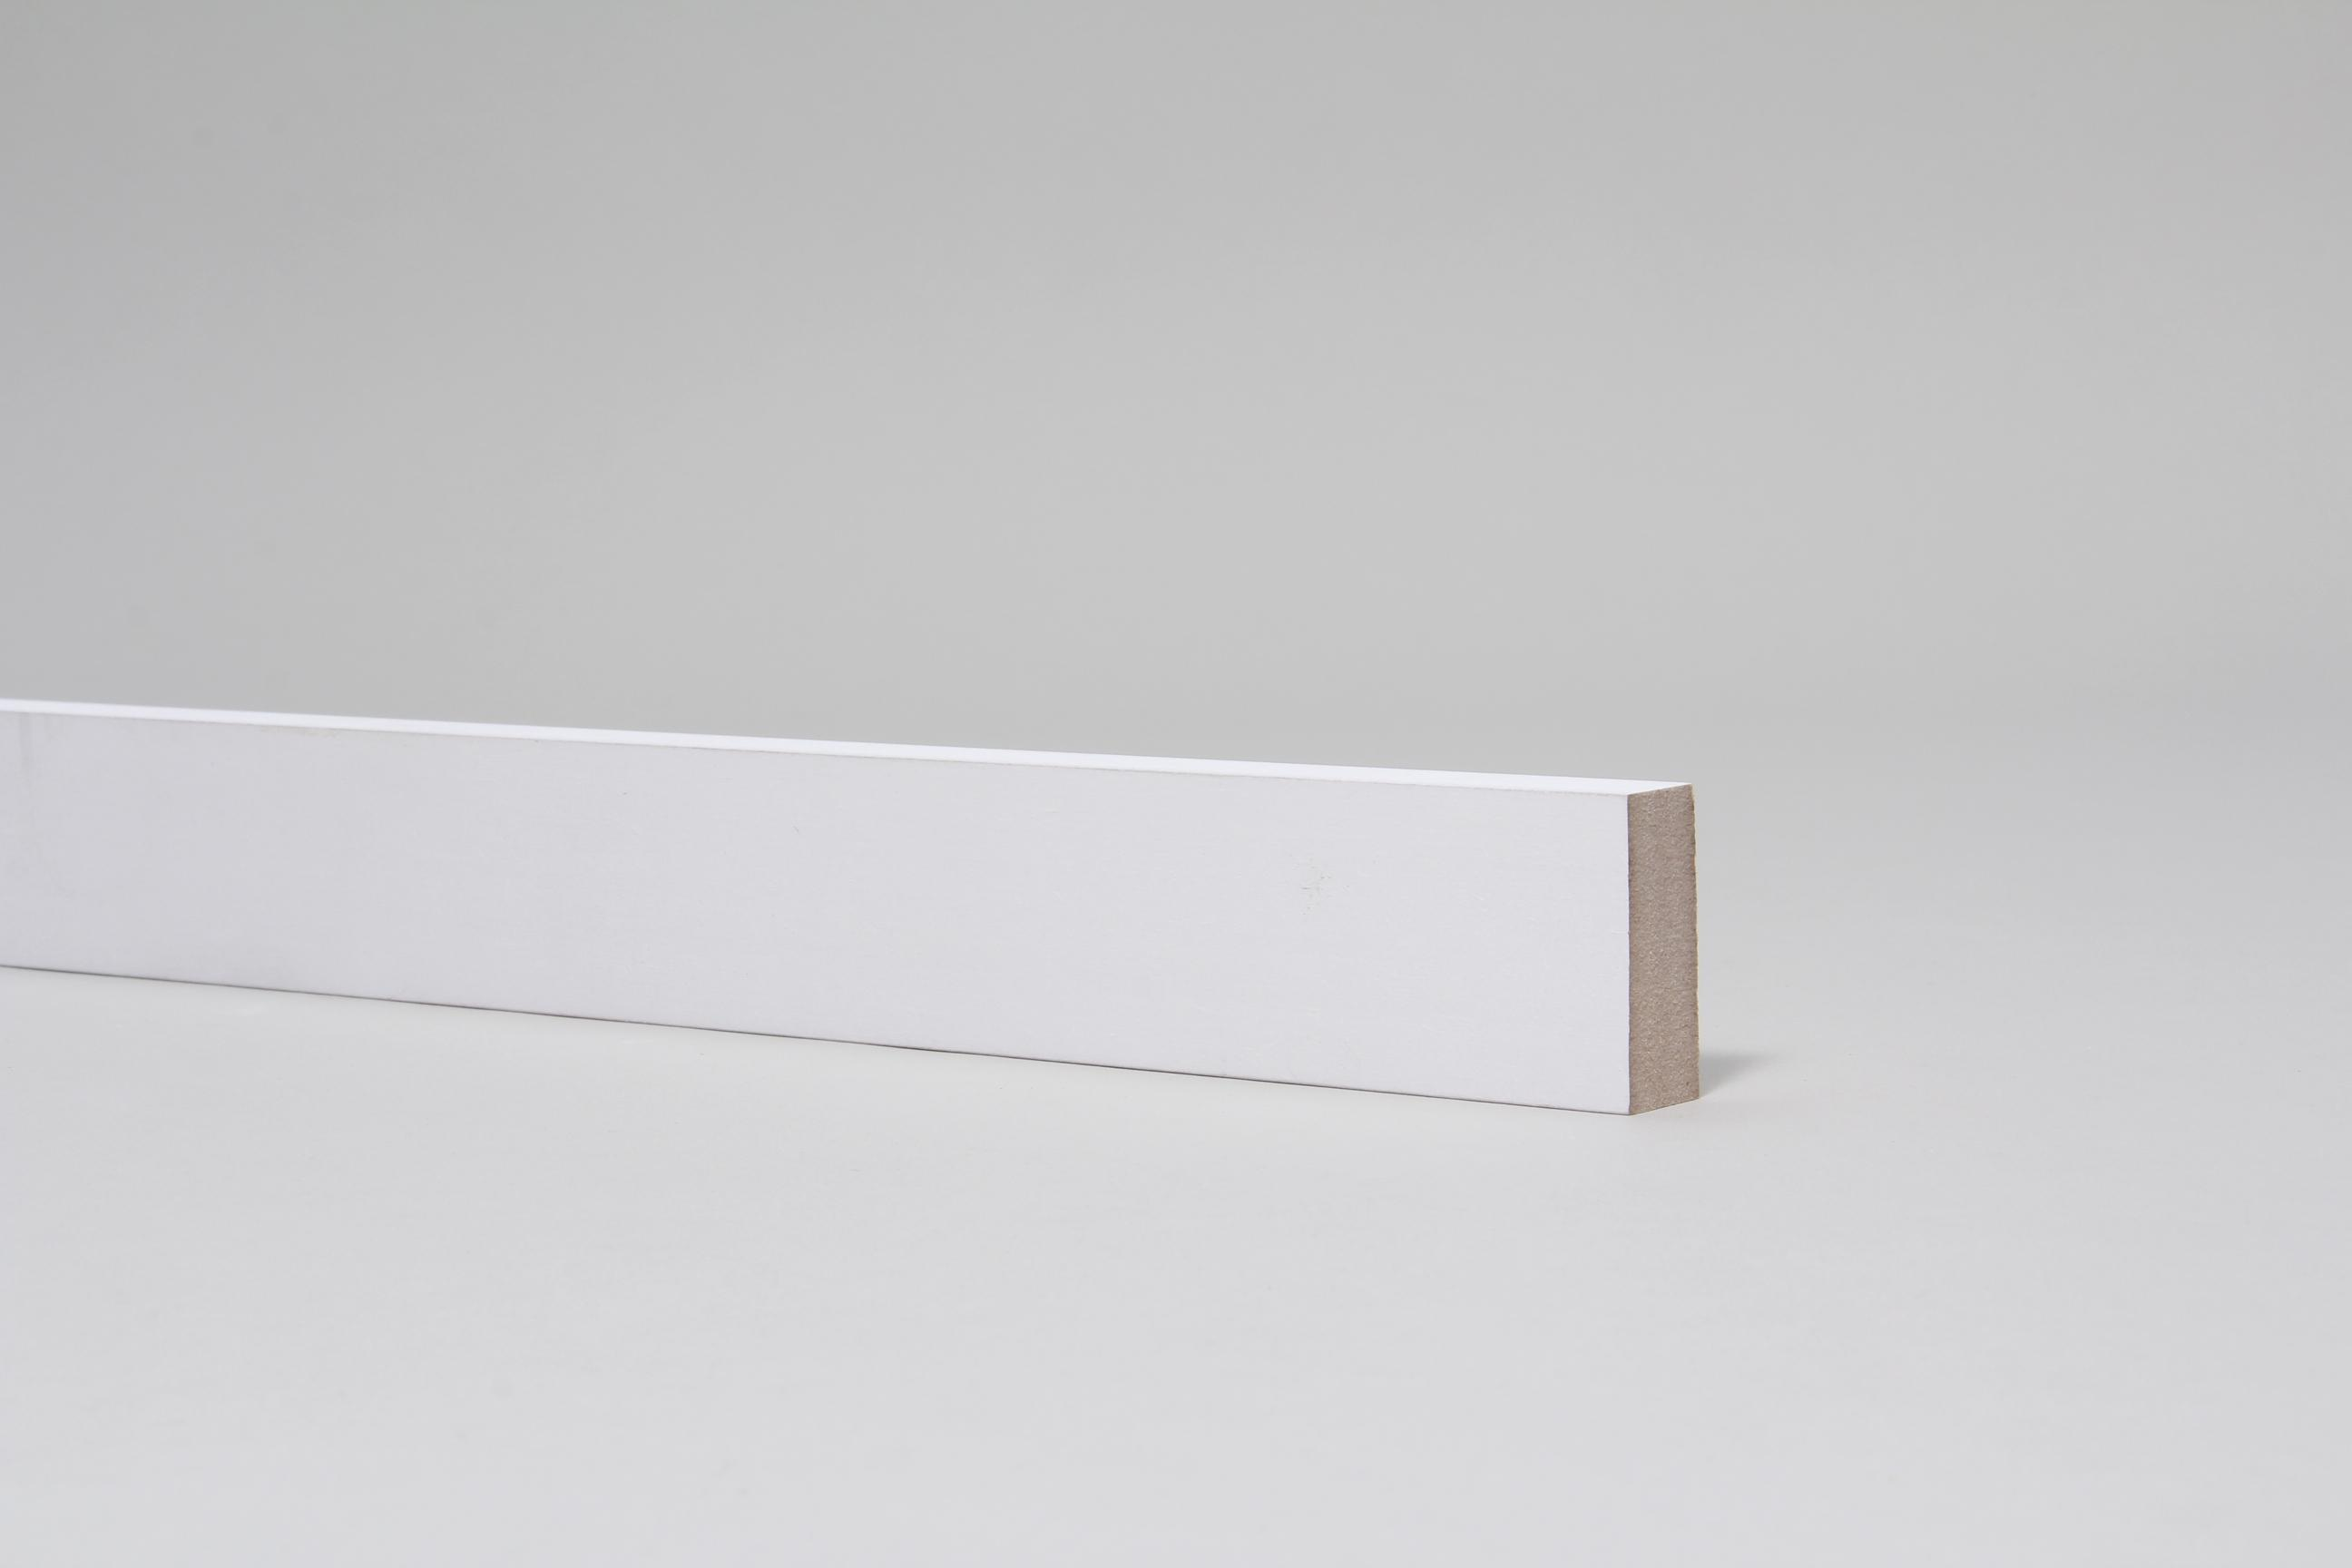 Plain Square Edge 18mm x 44mm Architrave Set Primed